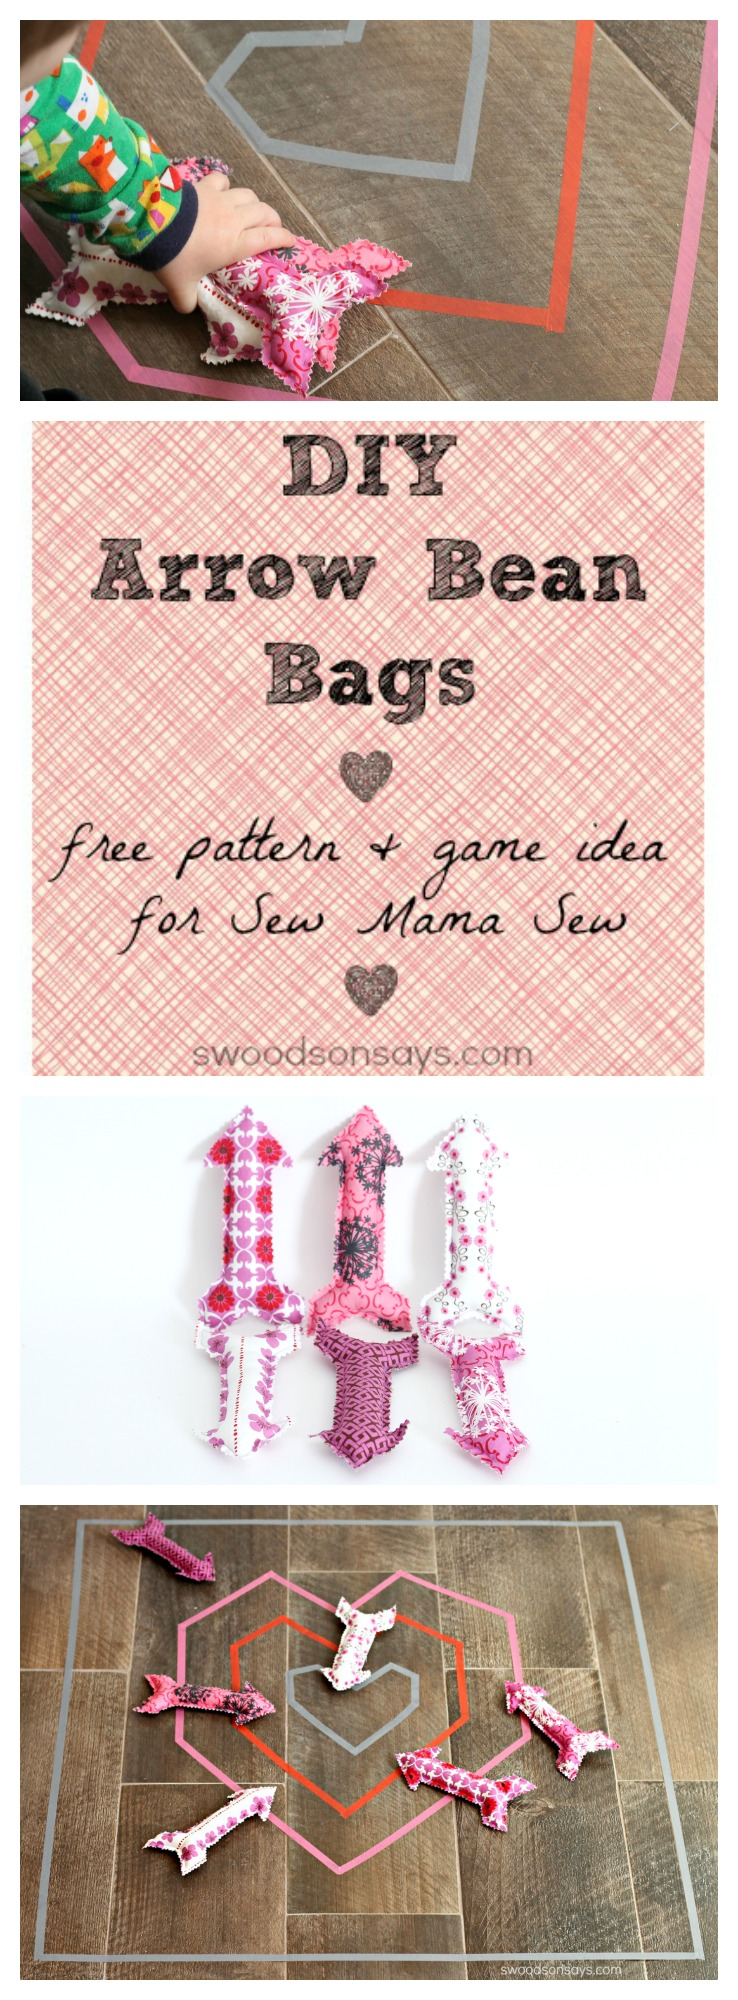 DIY Arrow Bean Bag Free Pattern